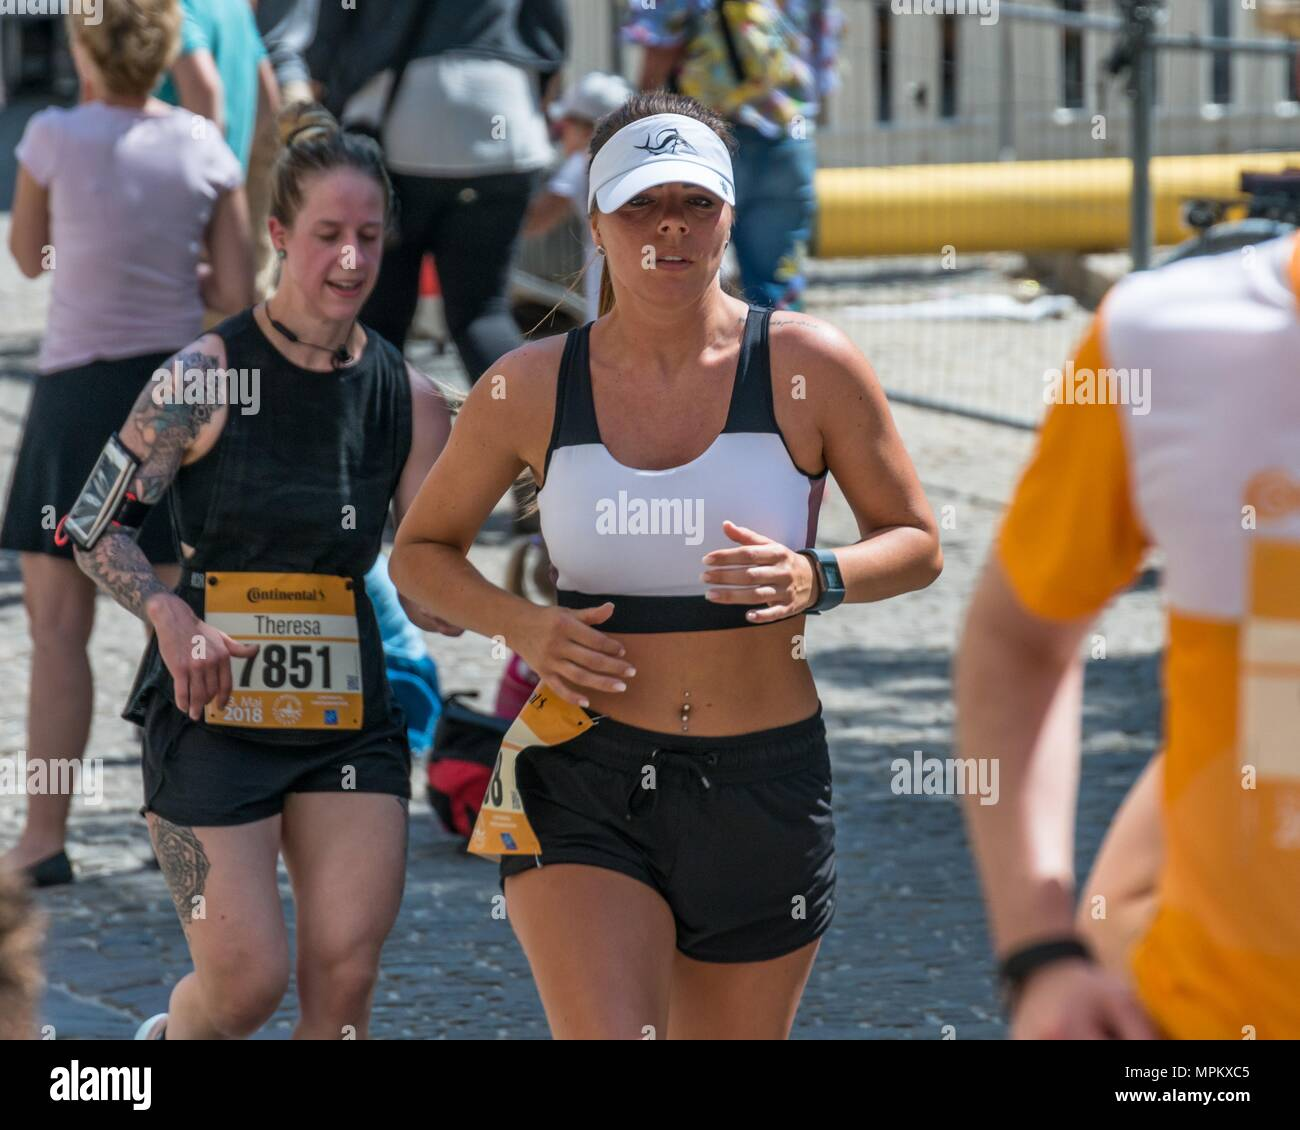 Regensburg, Bavaria, Germany, May 13, 2018: Participant of the Regensburg Marathon 2018 at the old city hall - Stock Image